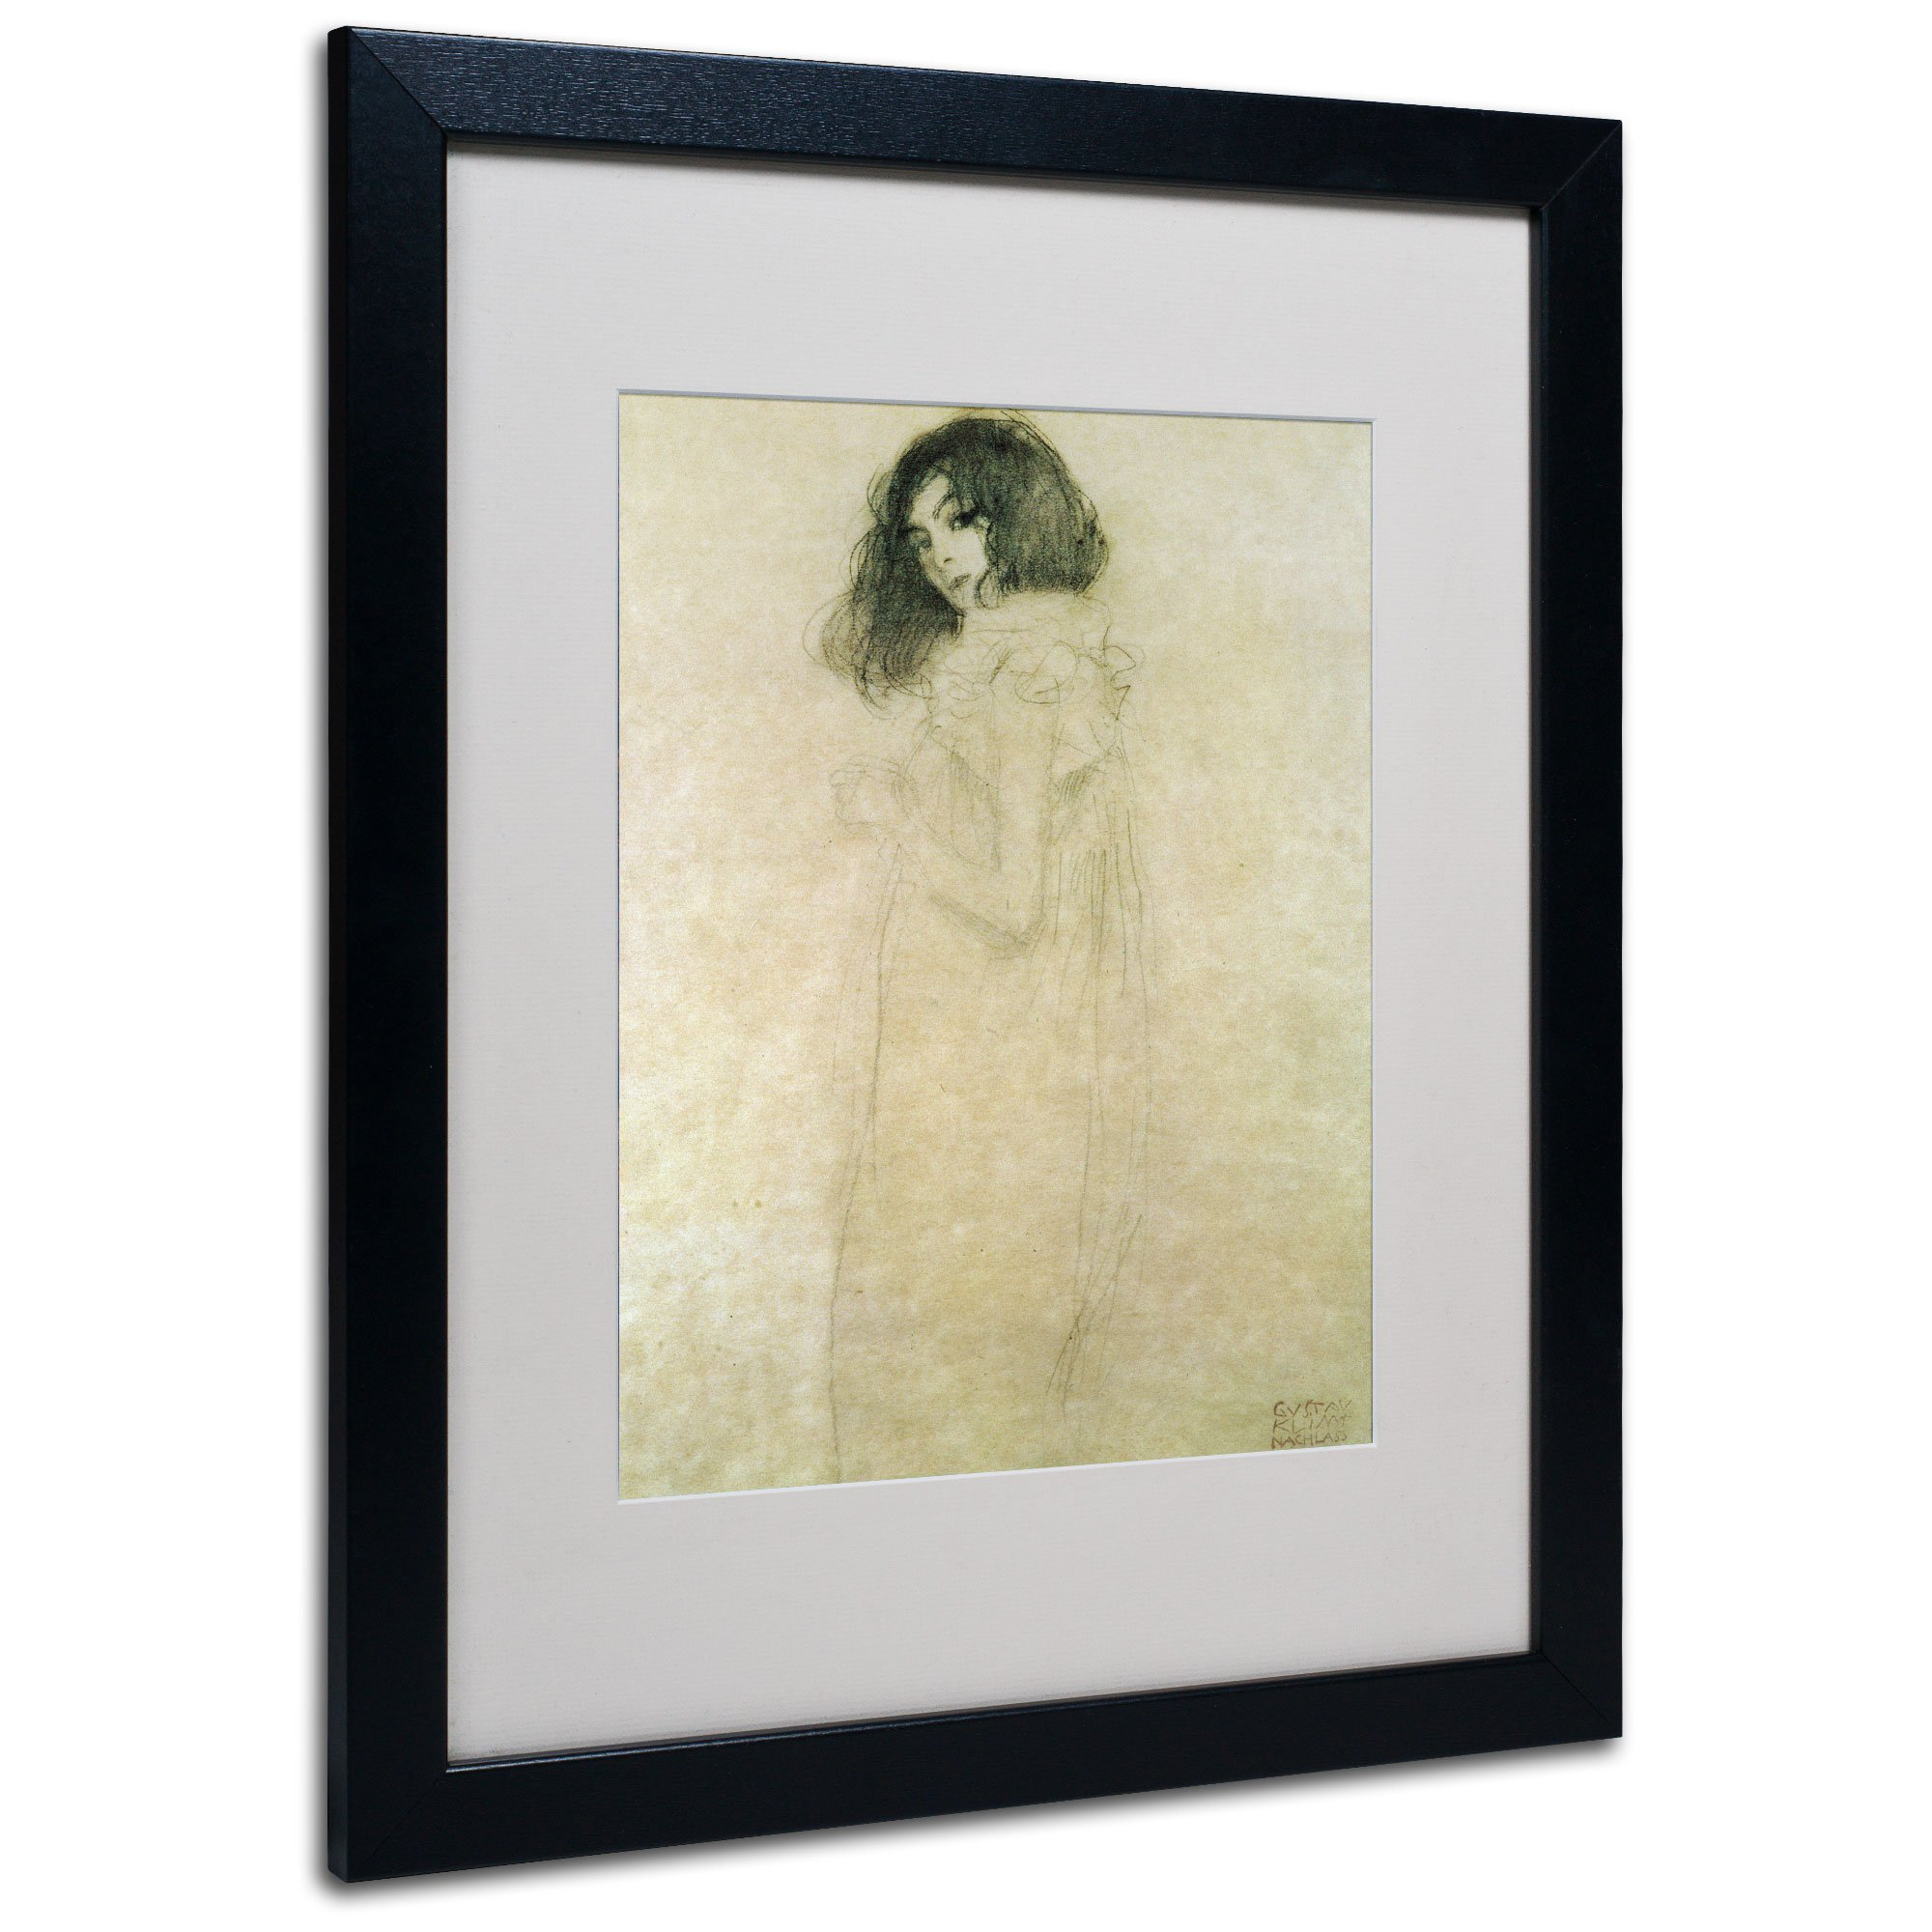 Trademark Fine Art Portrait of a Young Woman 1896-97 Artwork by Gustav Klimt in Black Frame, 16 by 20-Inch by Trademark Fine Art